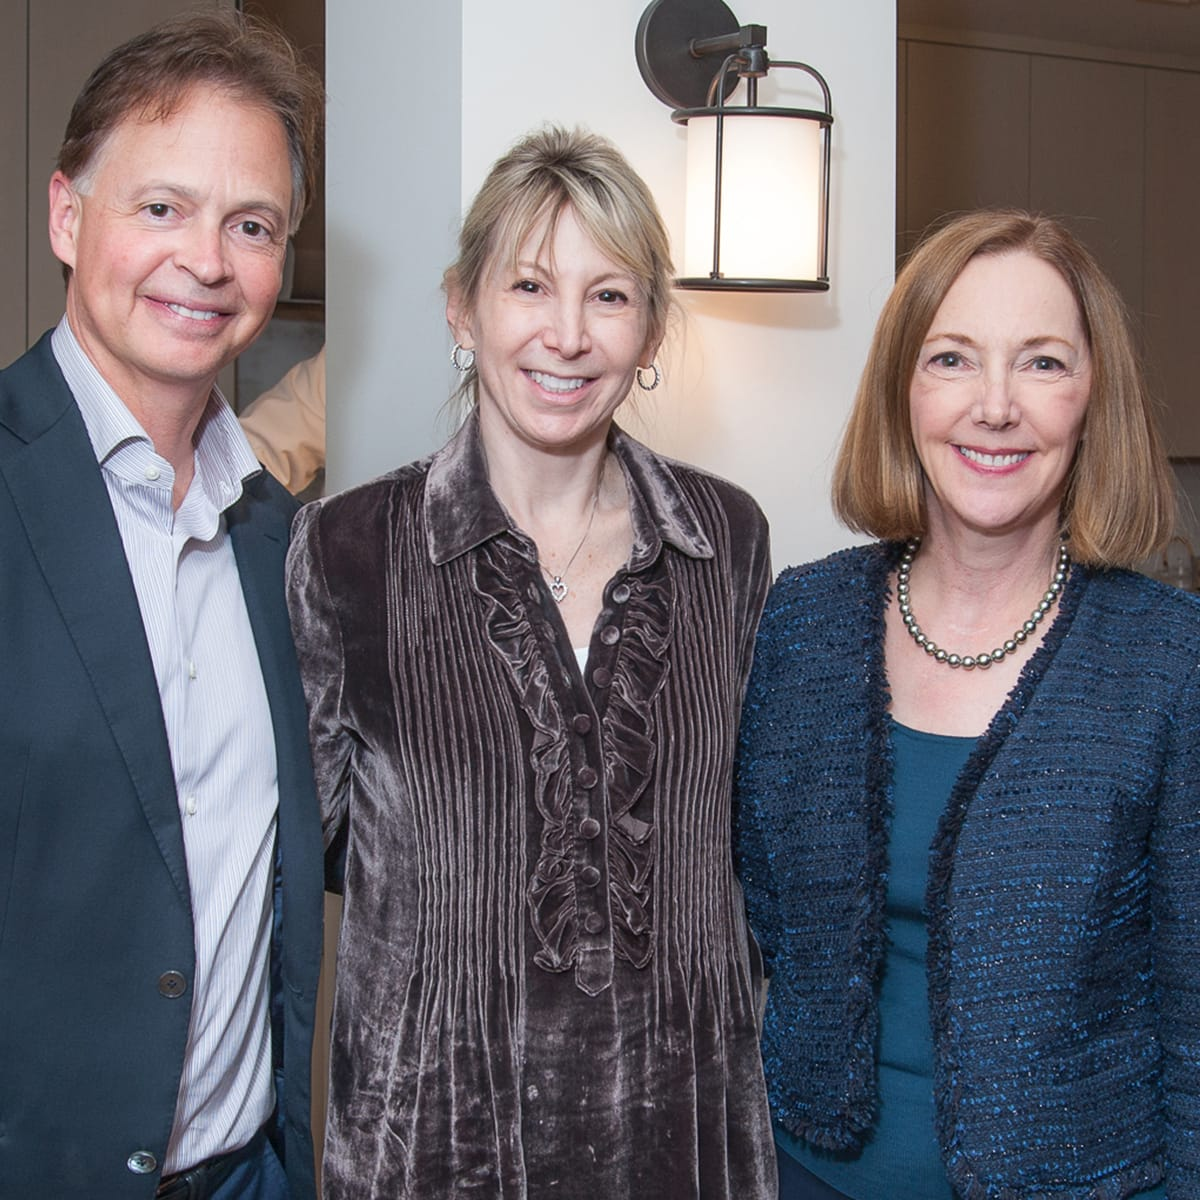 Houston, Da Camera VIP launch event for Sarah's Marcel Proust Project, Rob and Carla Leslie, Nancy Bratic